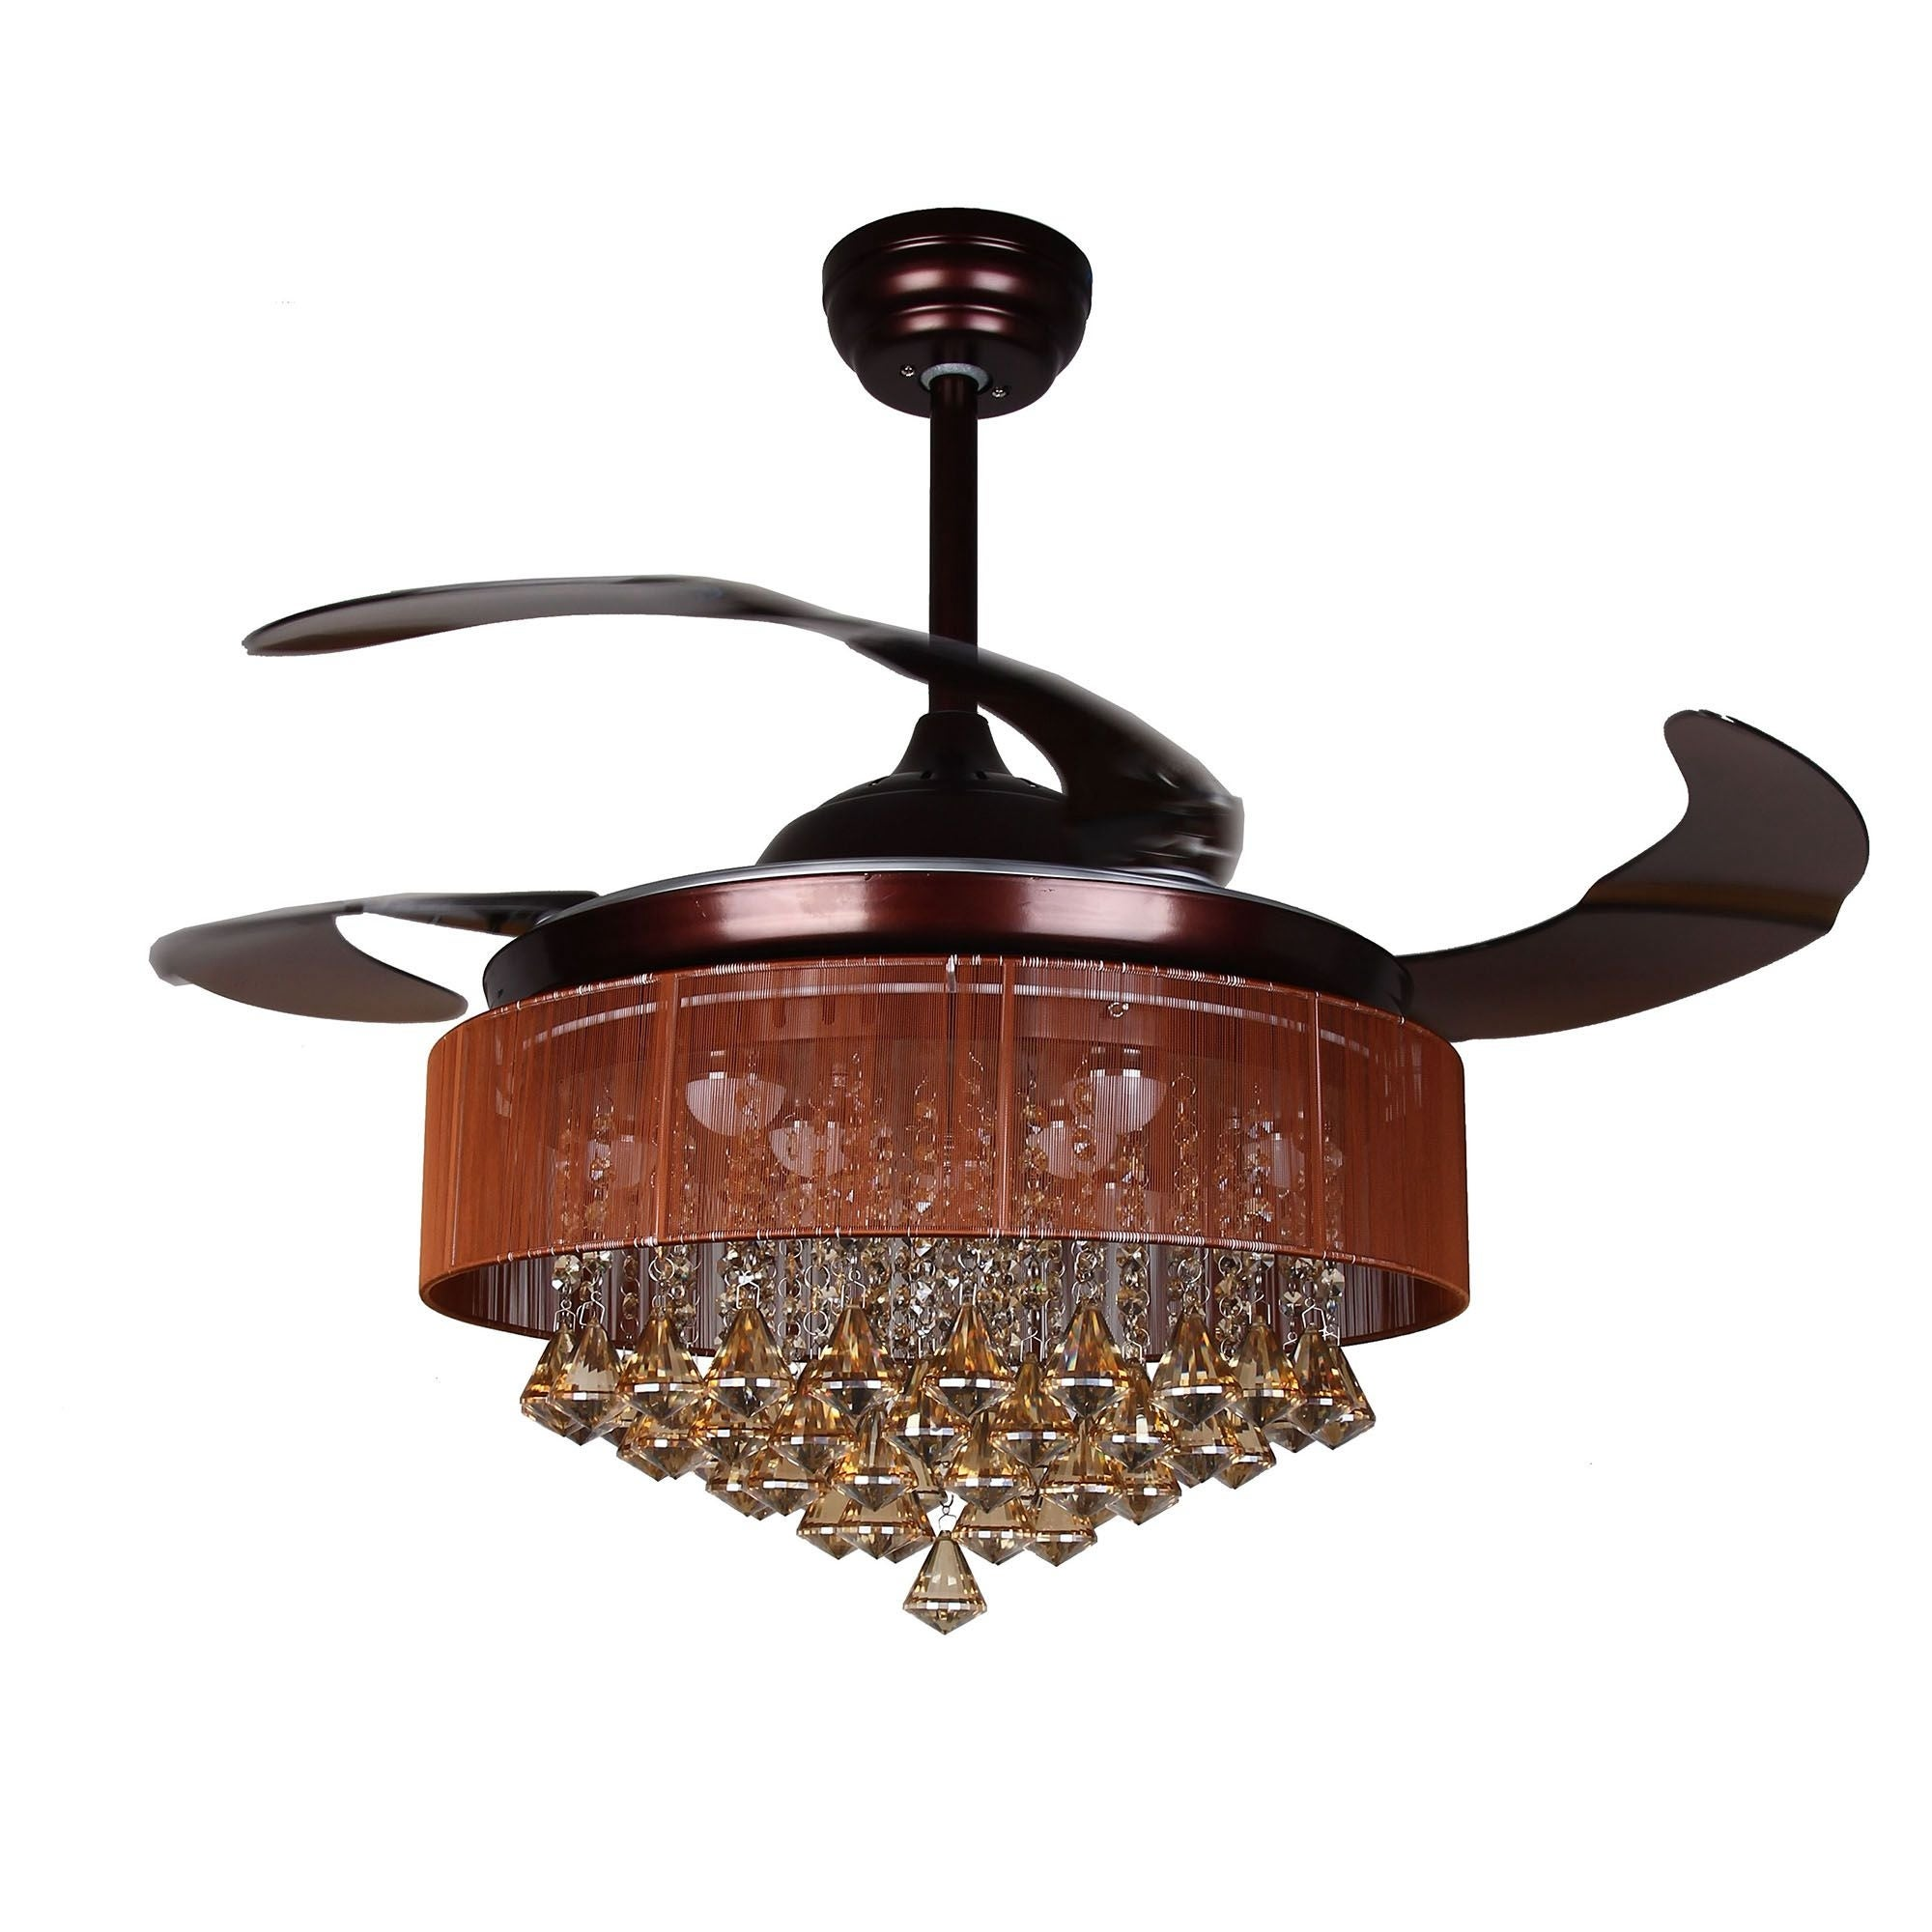 overstock garden ceiling fan retractable inch iron home product black shipping free blades foldable industrial today